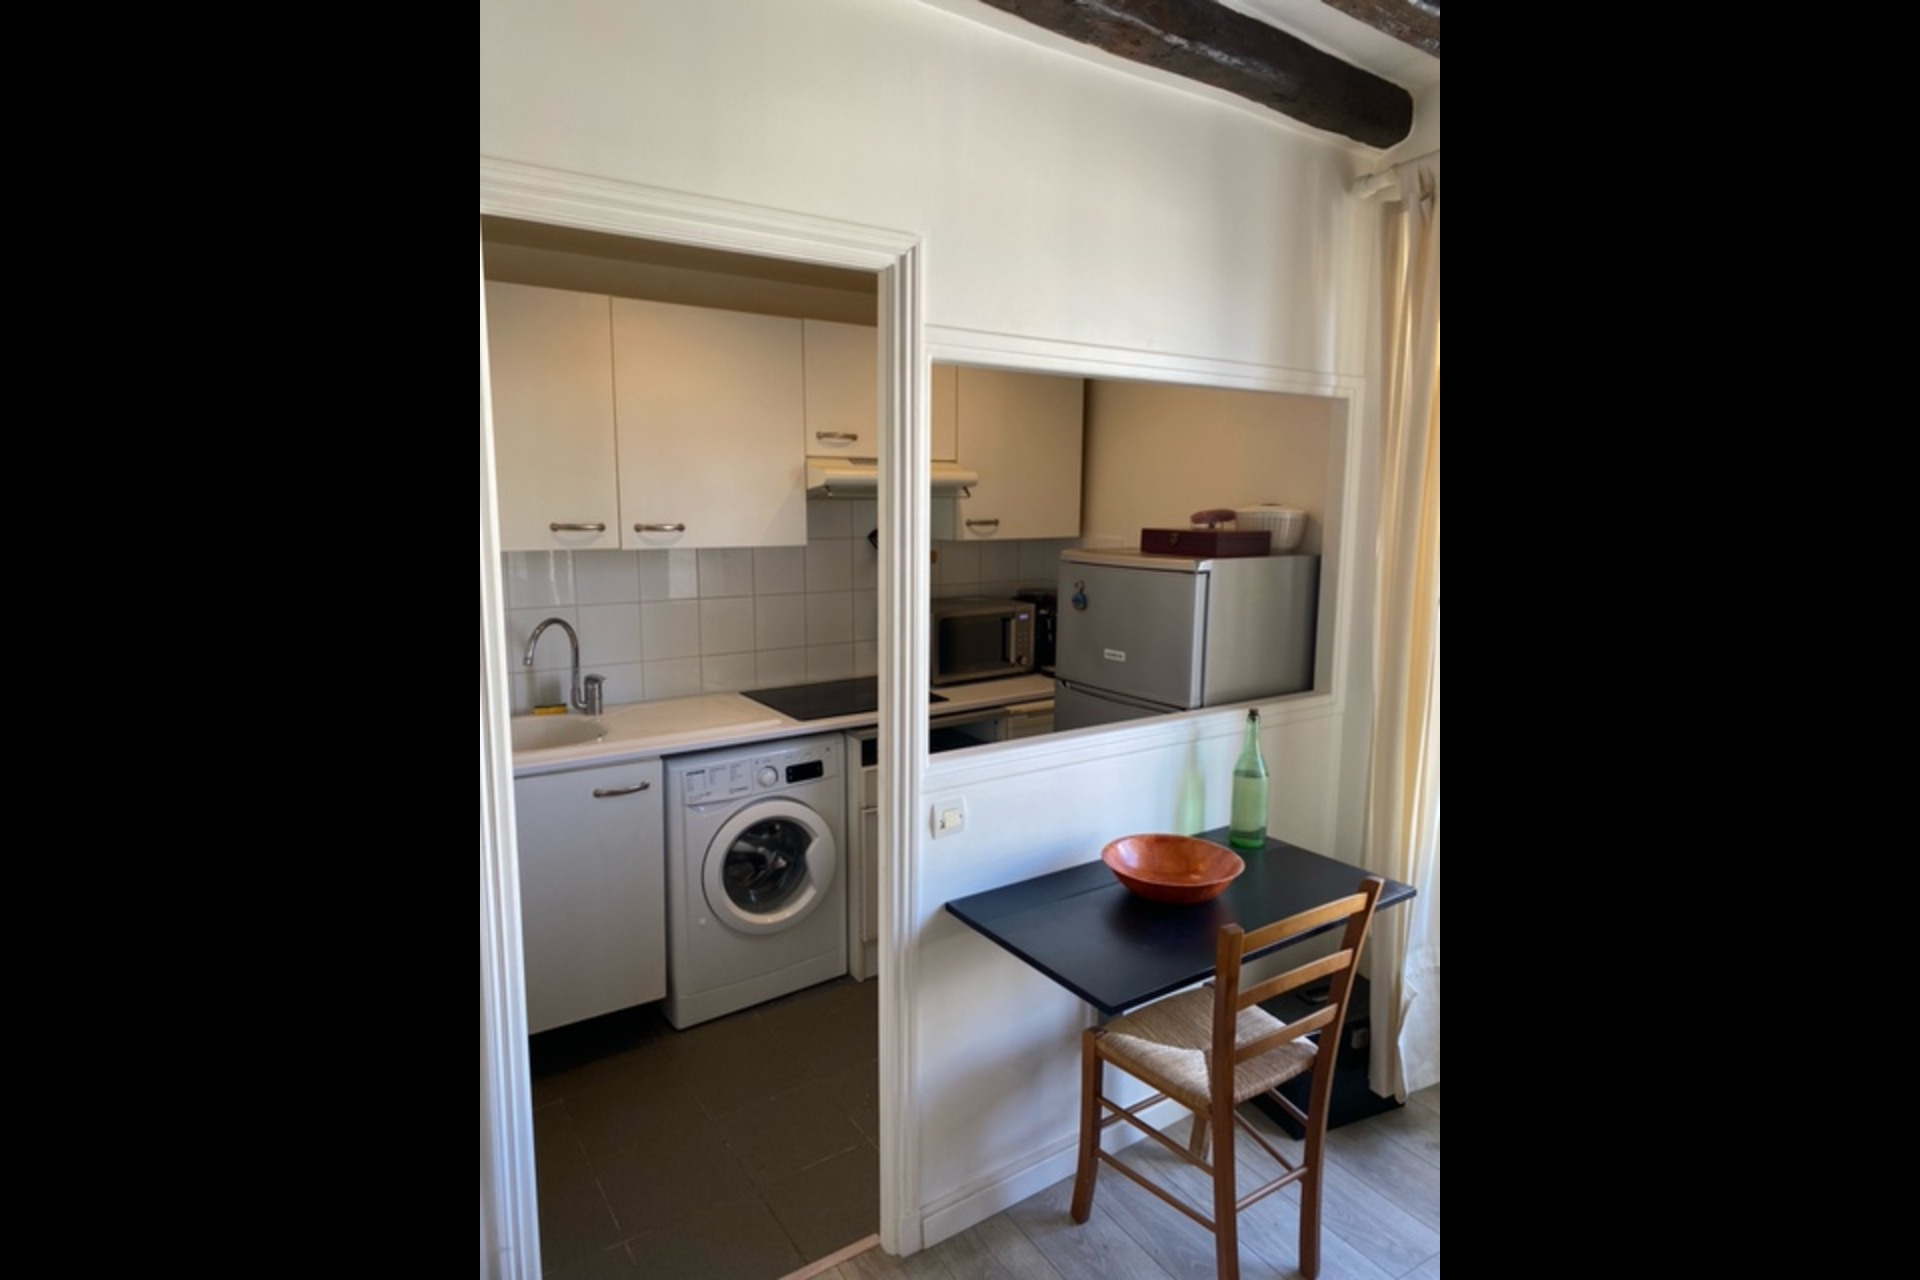 image 1 - Apartment For rent chambourcy - 2 rooms